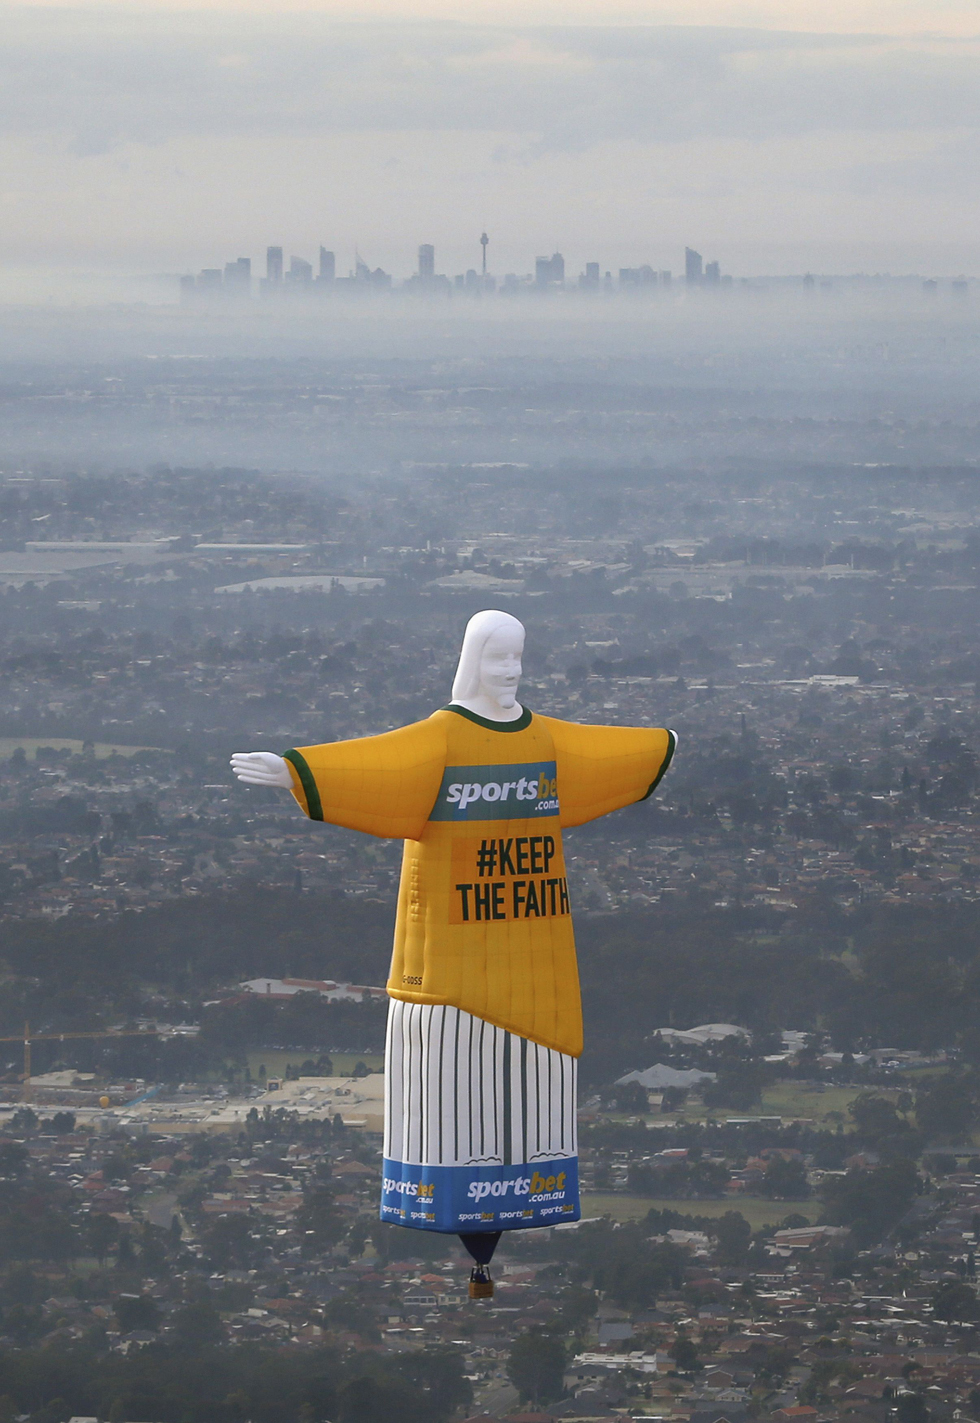 A hot air balloon in the shape of Brazil's Christ the Redeemer statue flies over the Sydney skyline